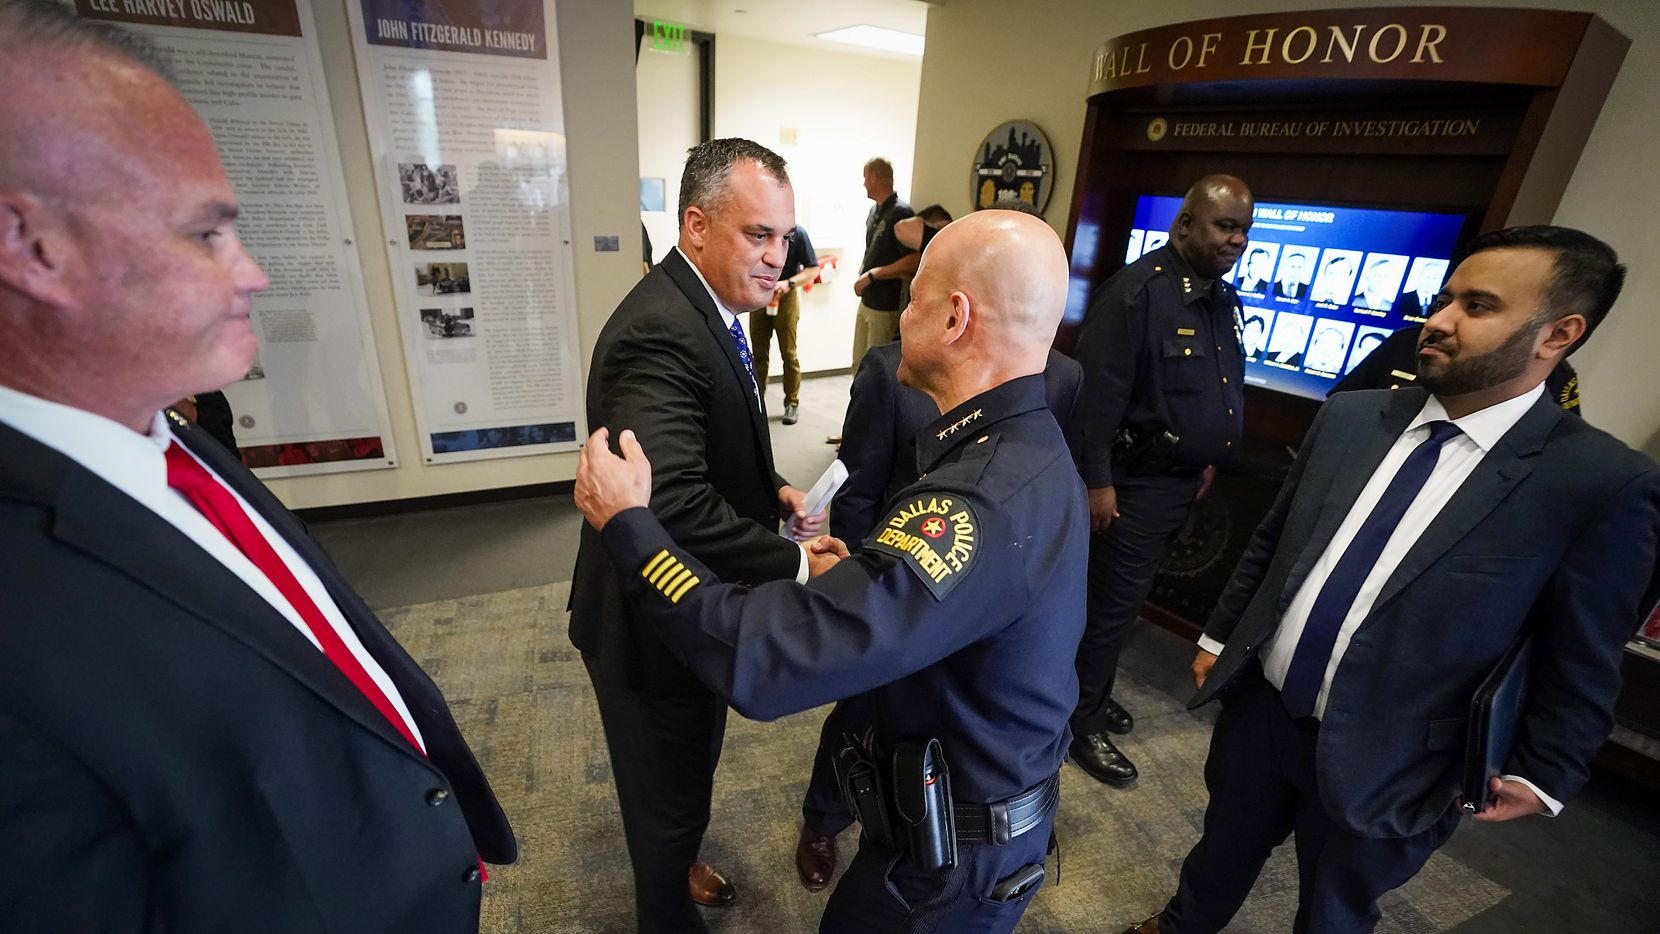 Dallas Police Chief Eddie Garcia (center) shakes hands with Special Agent in Charge Matthew J. DeSarno of FBI – Dallas after a press conference on a law enforcement action taken to address violent crime at the FBI Dallas Headquarters on Thursday, June 10, 2021, in Dallas. ATF Dallas Special Agent in Charge Jeffrey Boshek II is at left, and Acting U.S. Attorney for the Northern District of Texas Prerak Shah is at right.